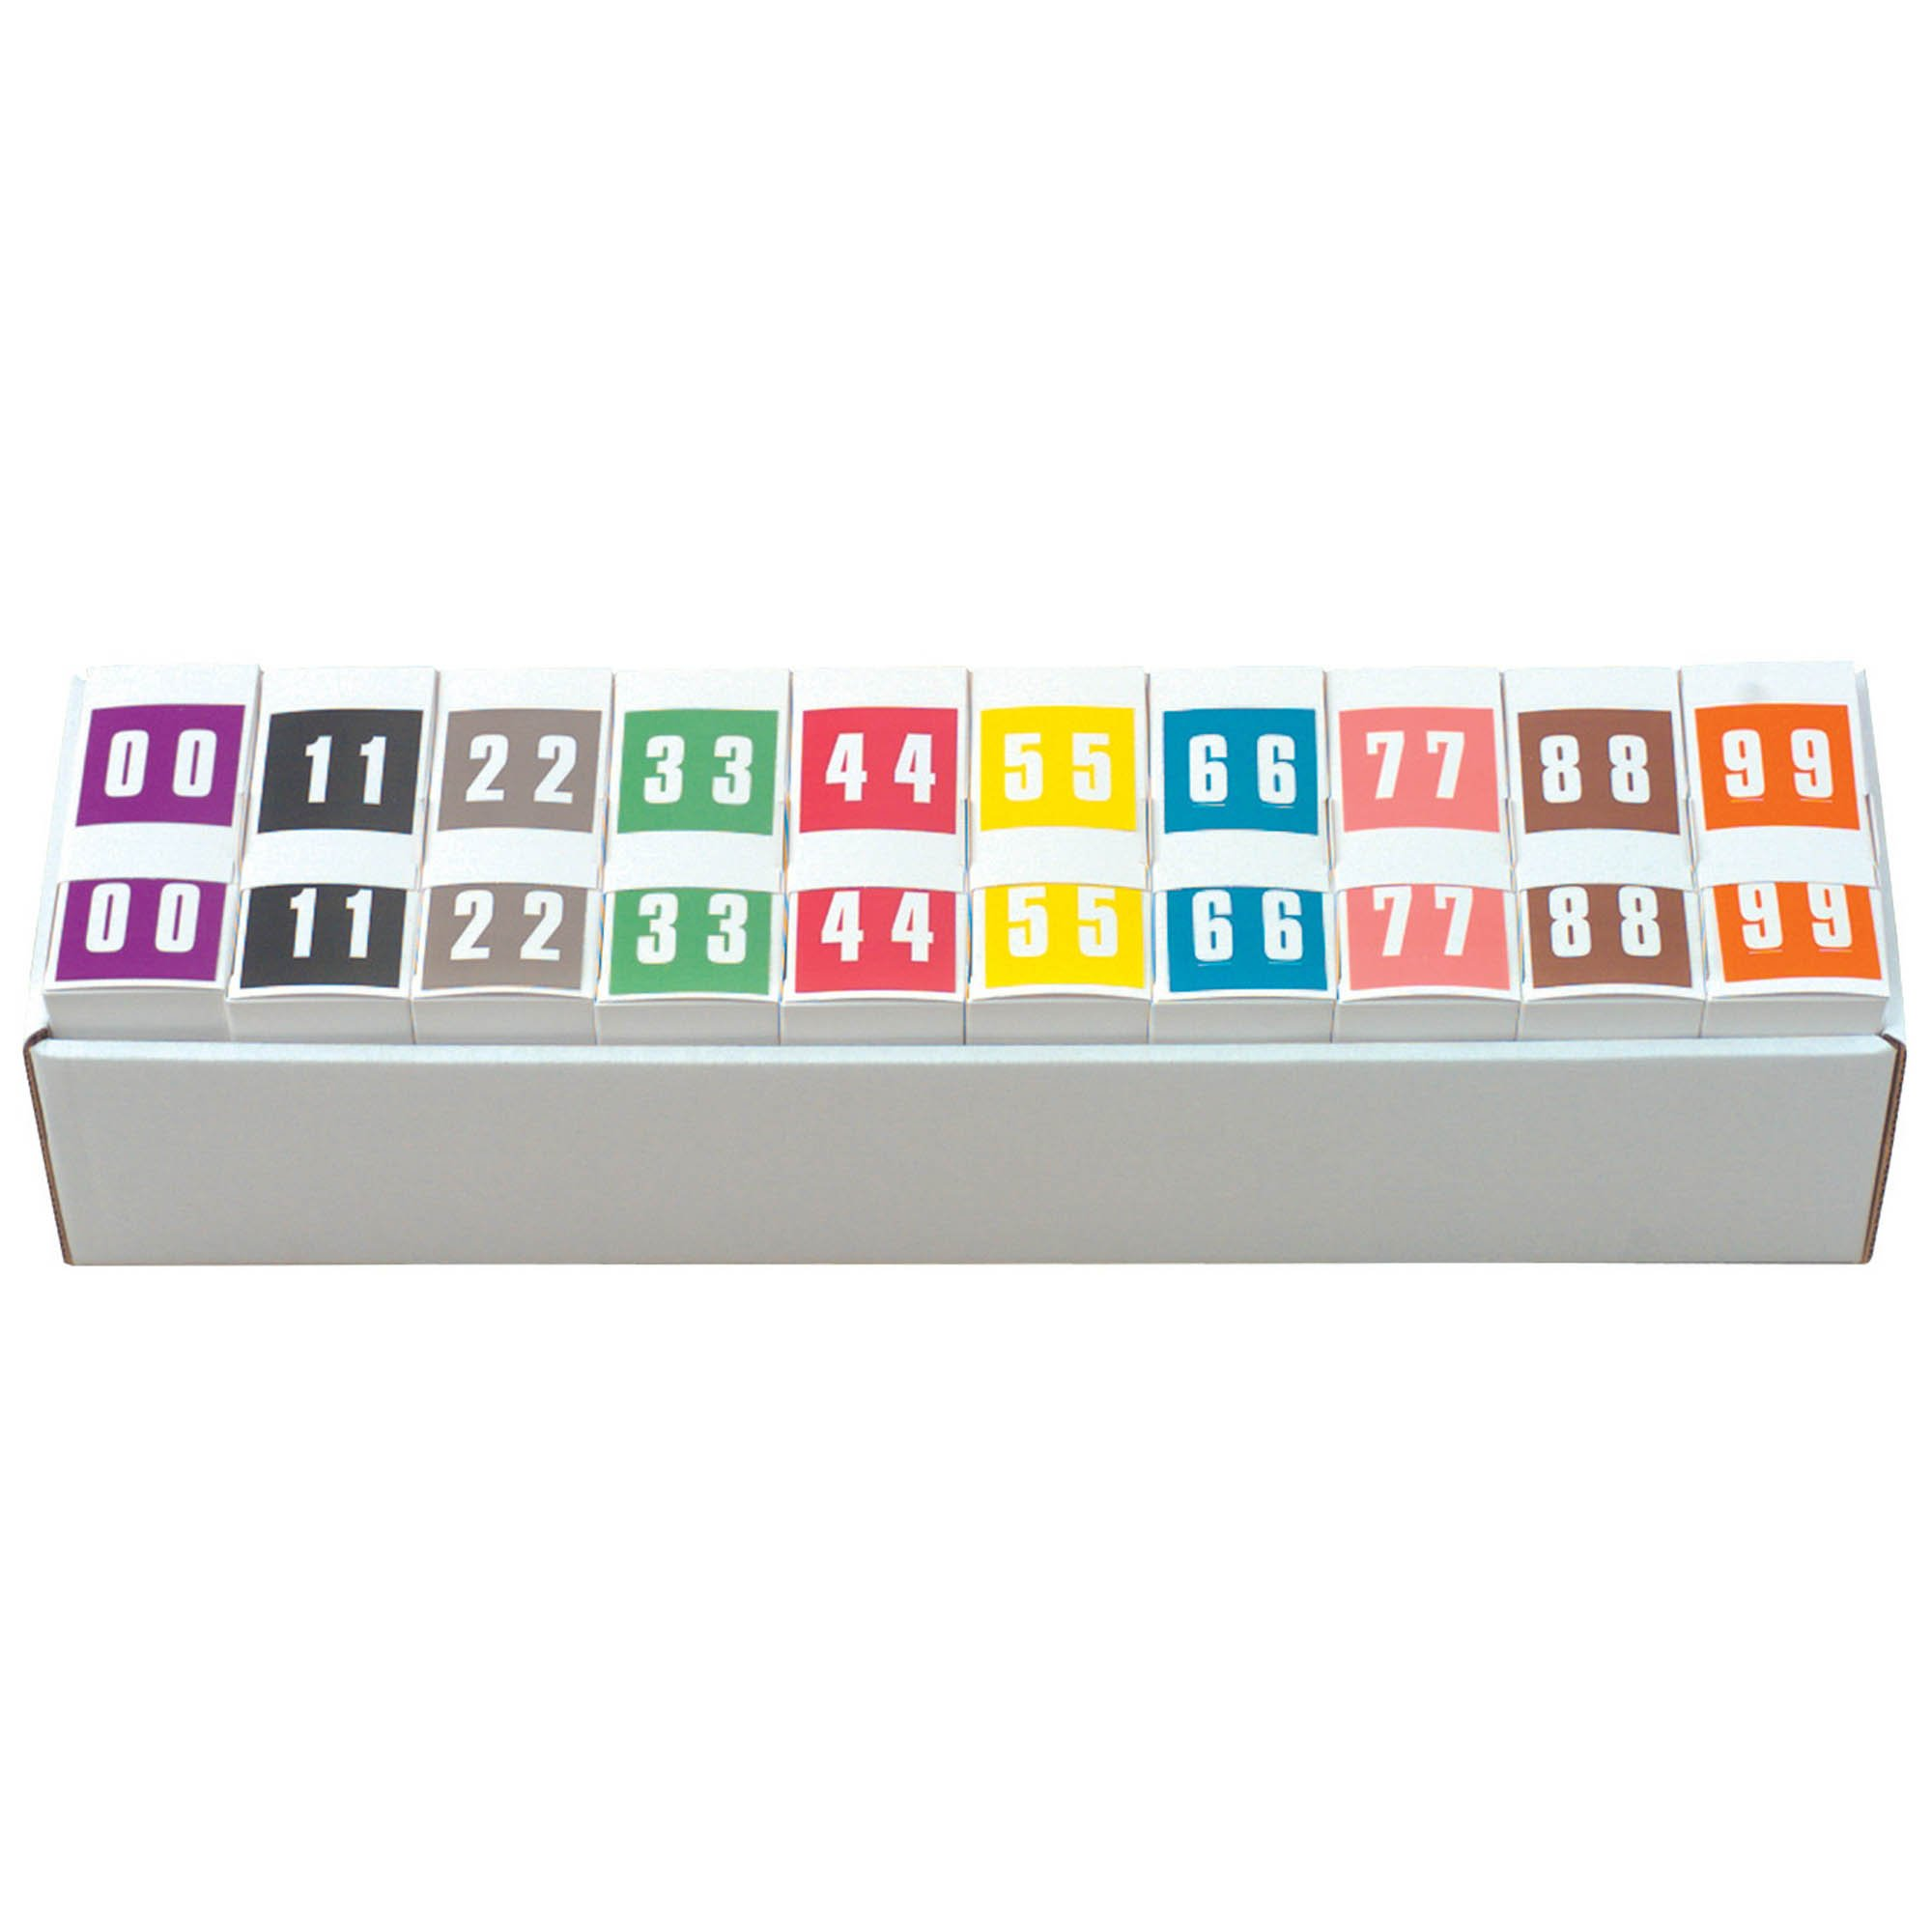 IFC #CL2300 Match System #3 Numeric Color Roll Labels - Set of Number 0 to 9